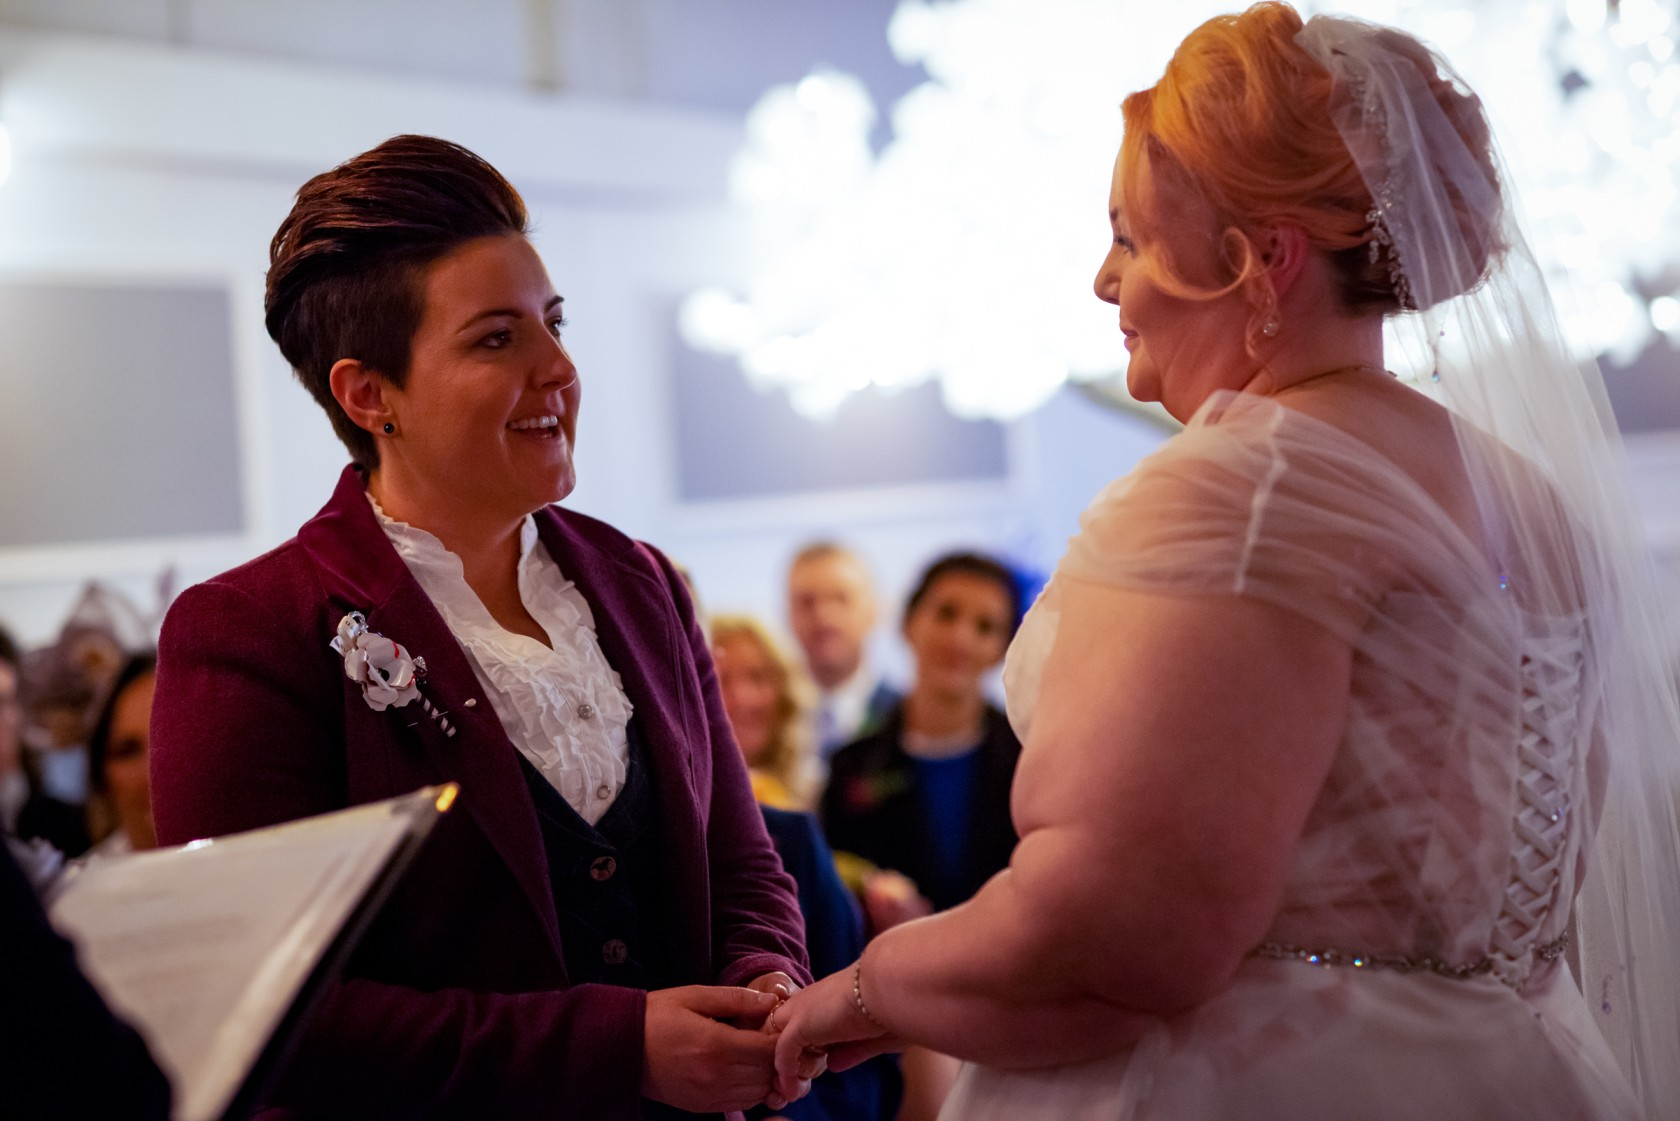 brides saying vows - wonderland wedding - real wedding inspiration - DIY wedding - romantic wedding - same sex wedding - lgbtq wedding - unconventional wedding